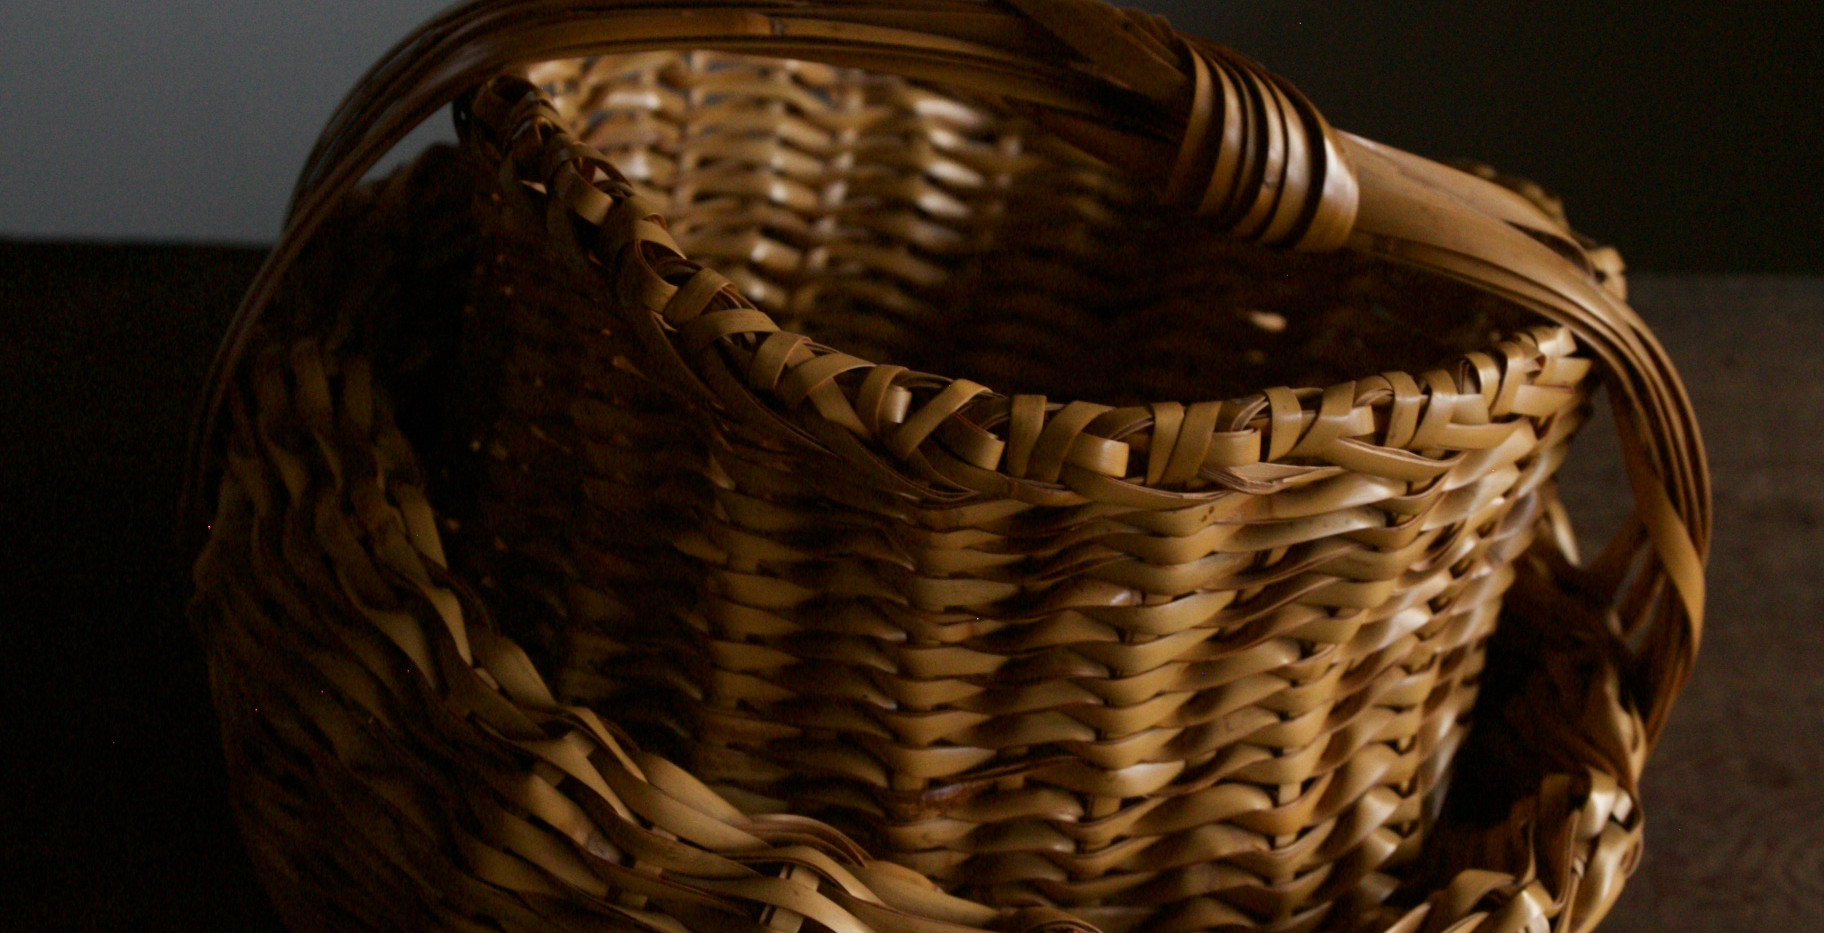 Folded basket by Iizuka Shokansai 04.jpg